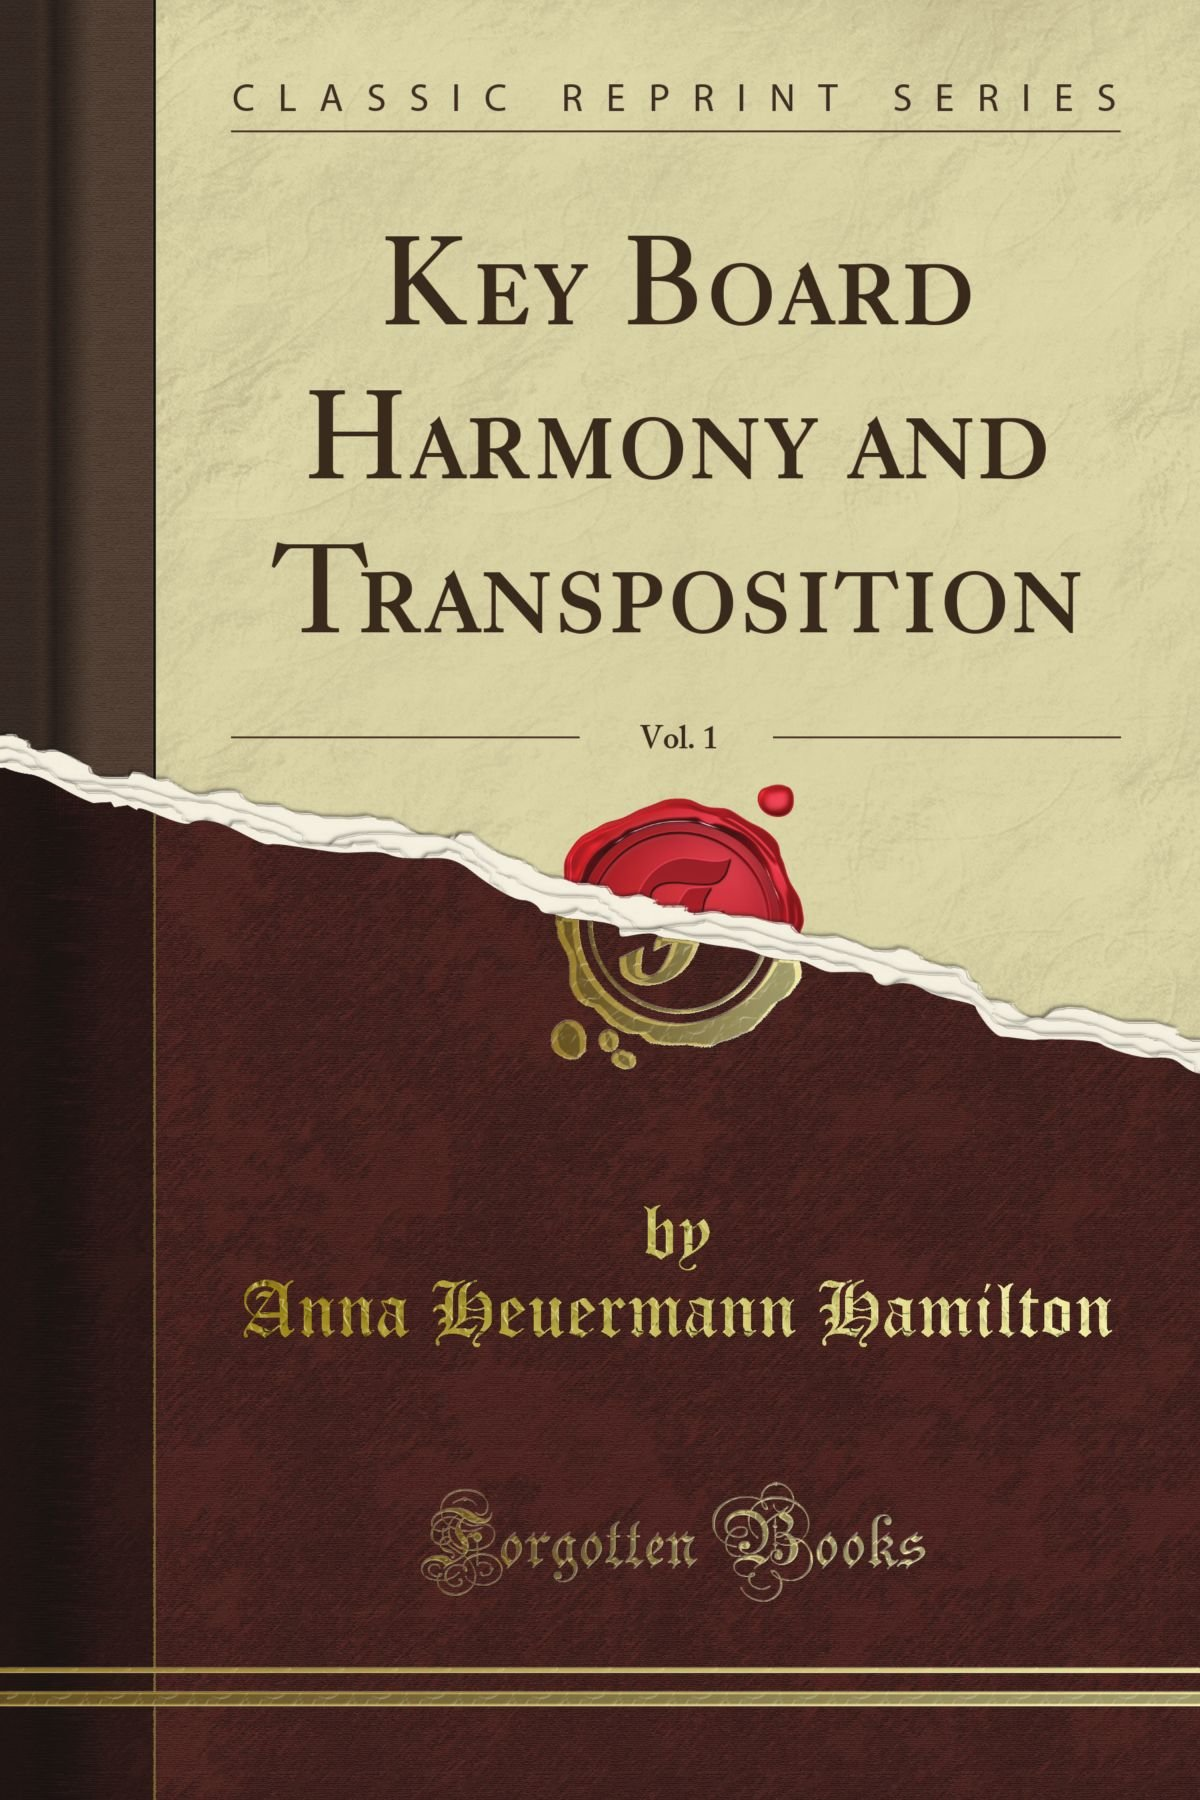 Key Board Harmony and Transposition, Vol. 1 (Classic Reprint) PDF